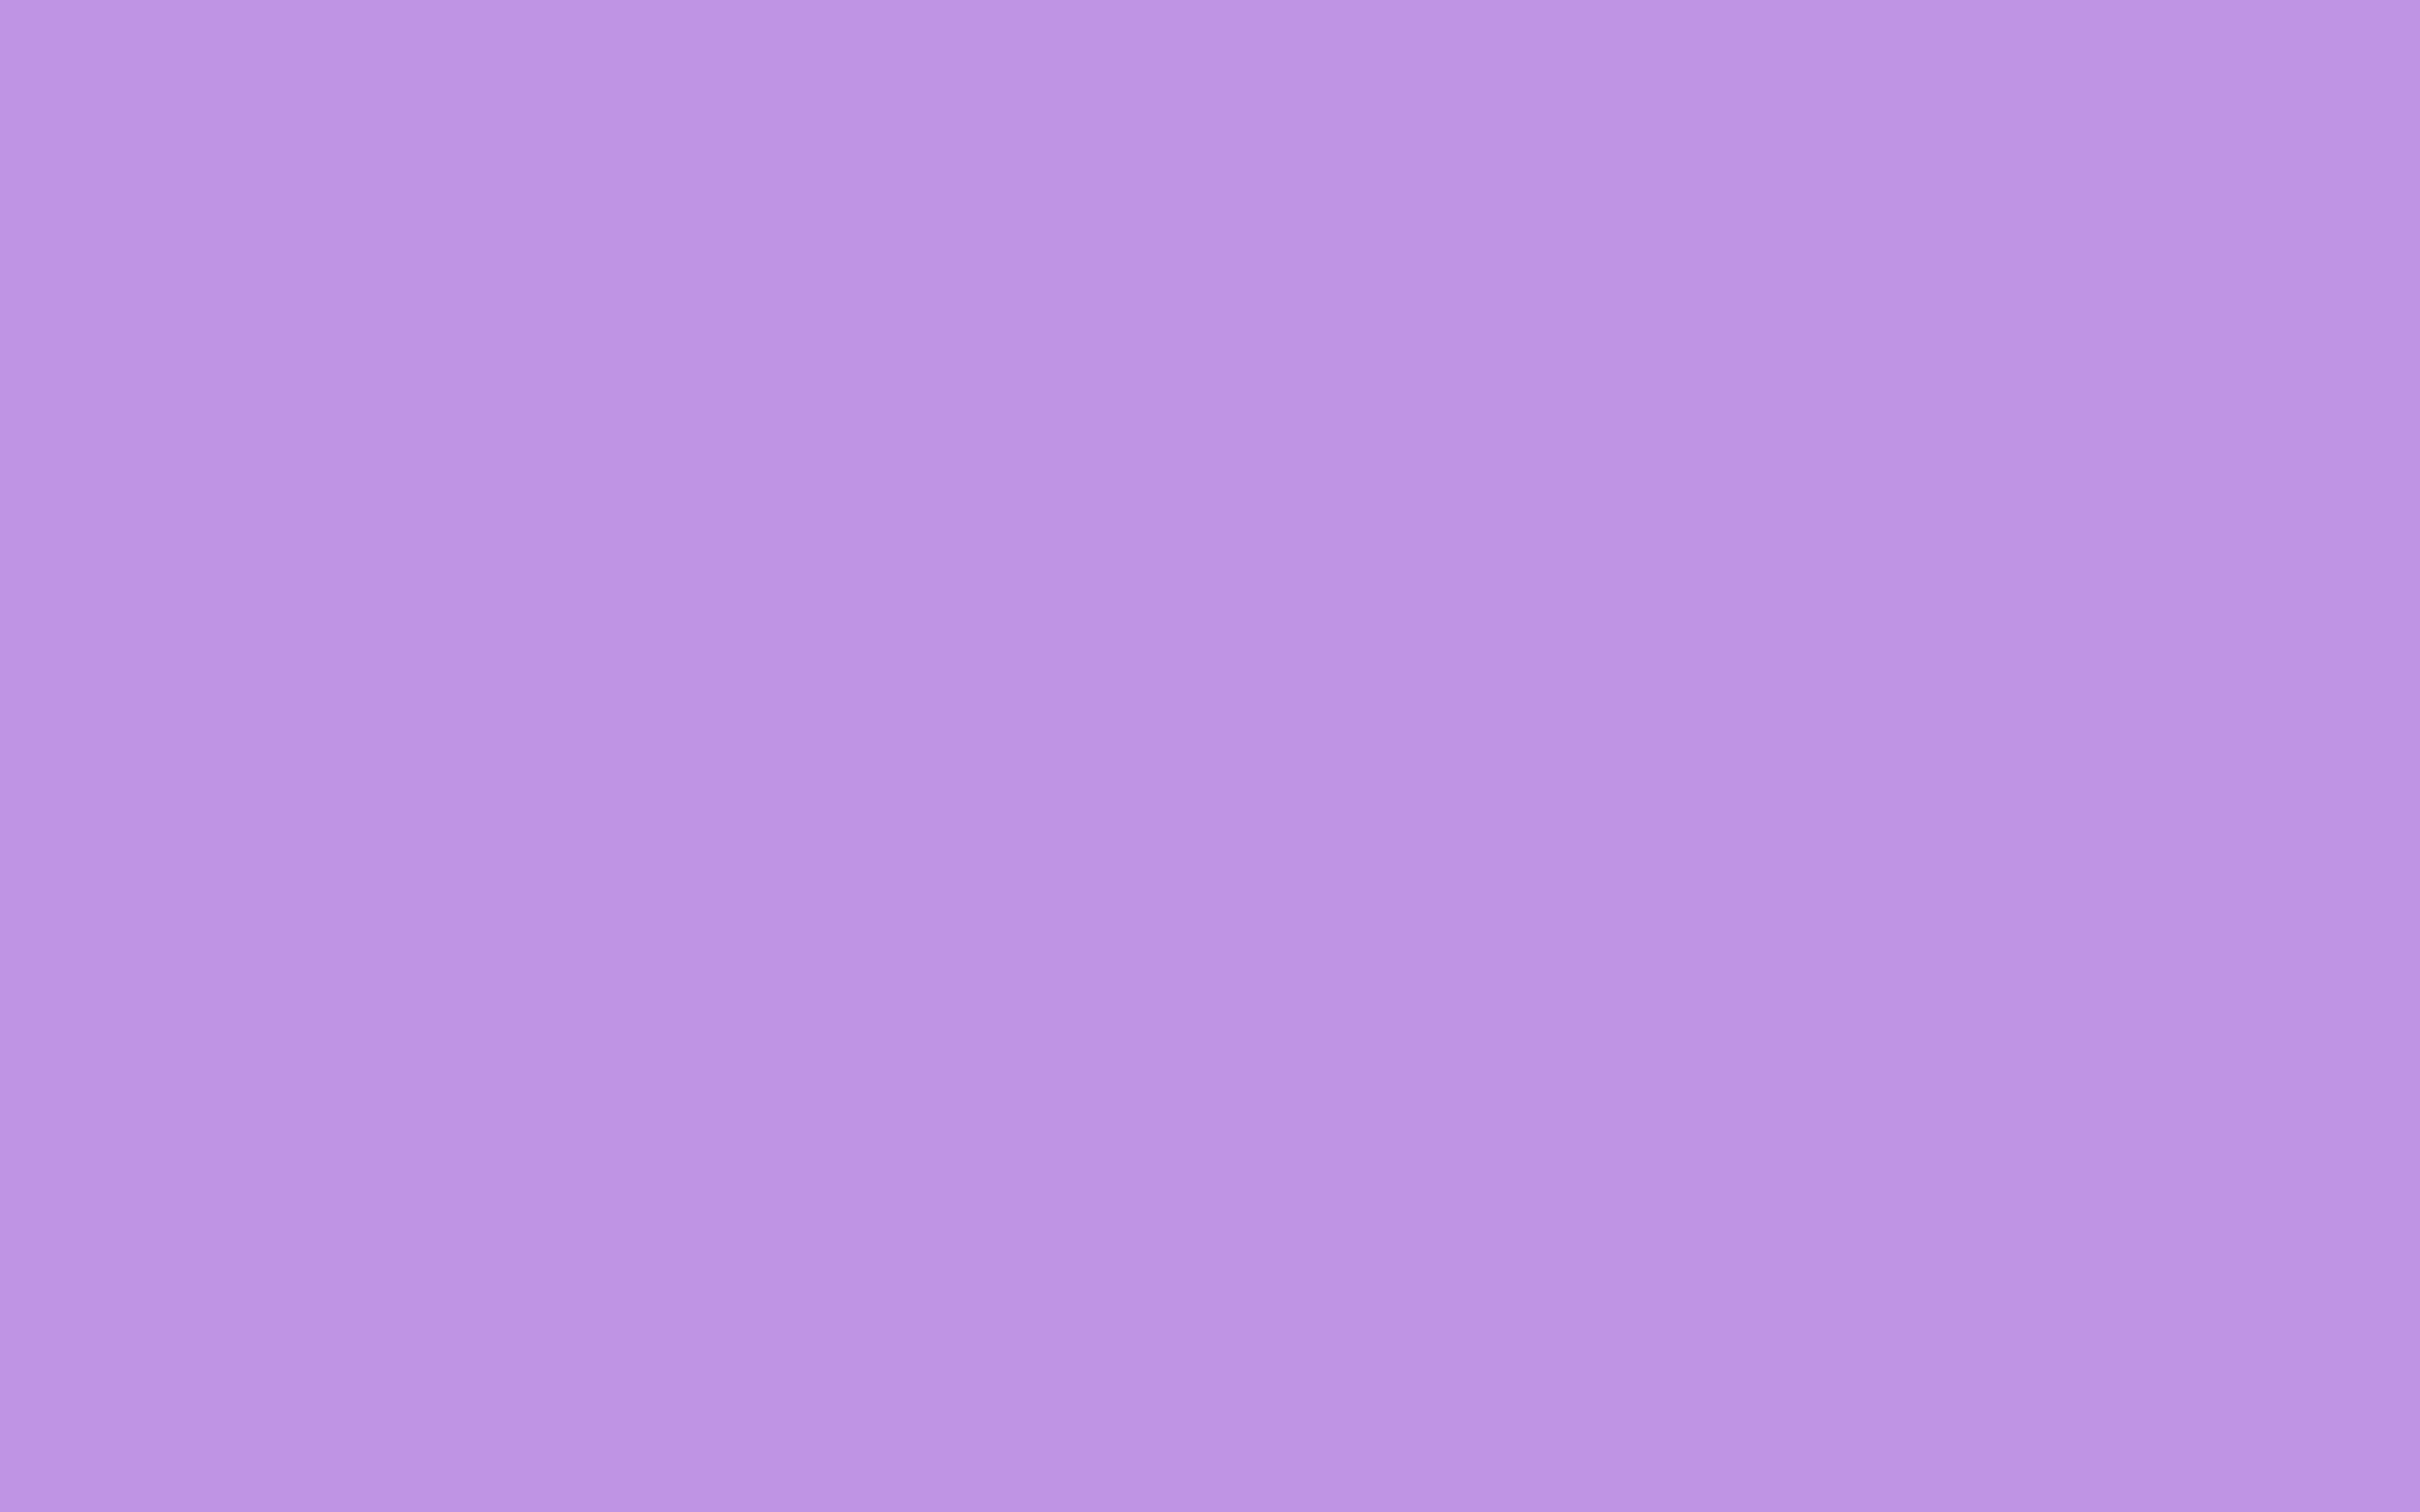 Free download 2560x1600 resolution Bright Lavender solid